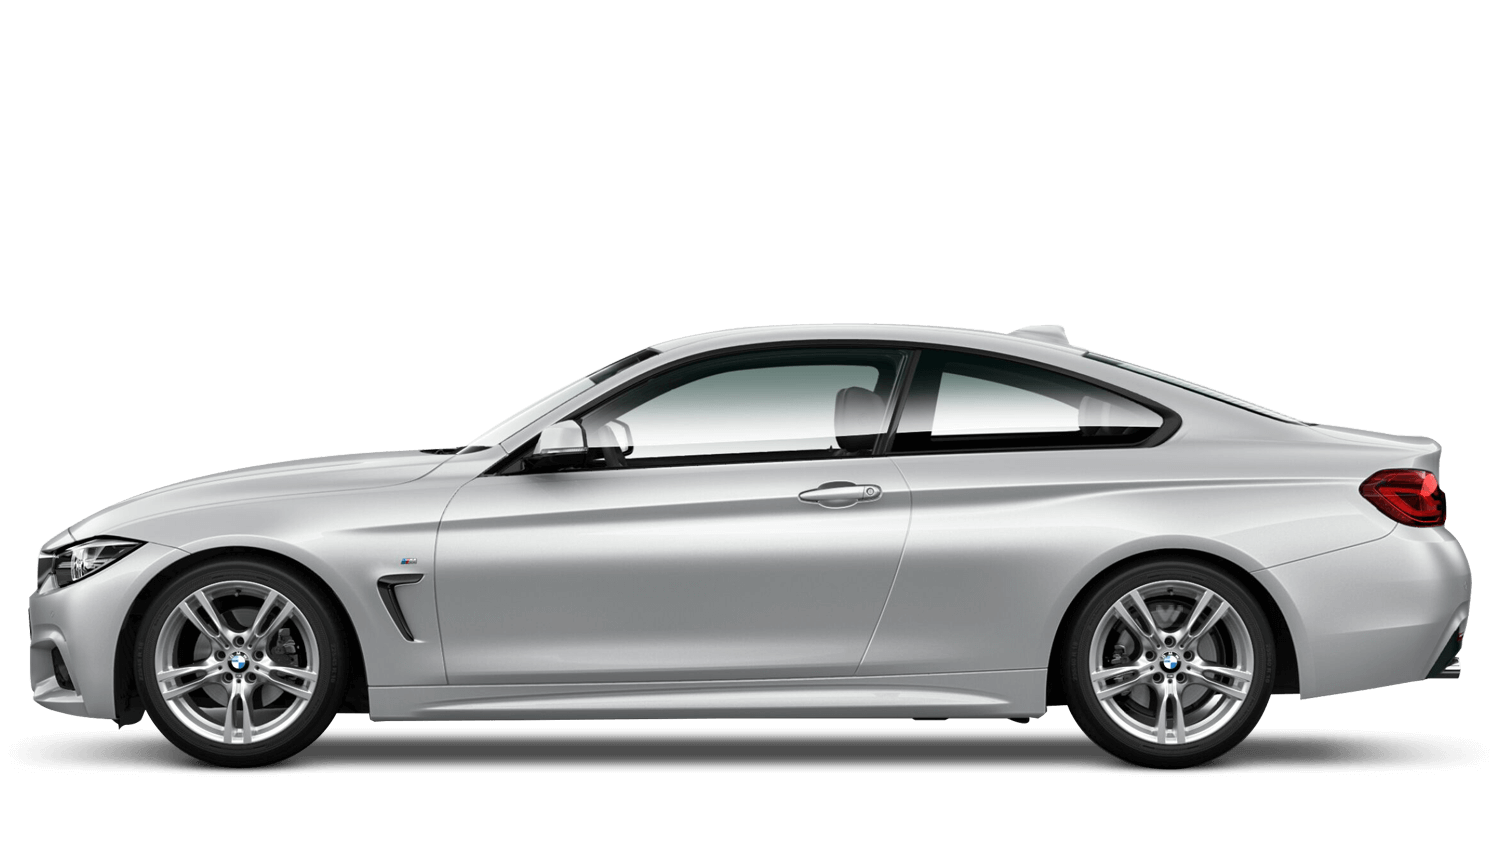 New Bmw 4 Series Coupe For Sale Barons Amp Chandlers Bmw